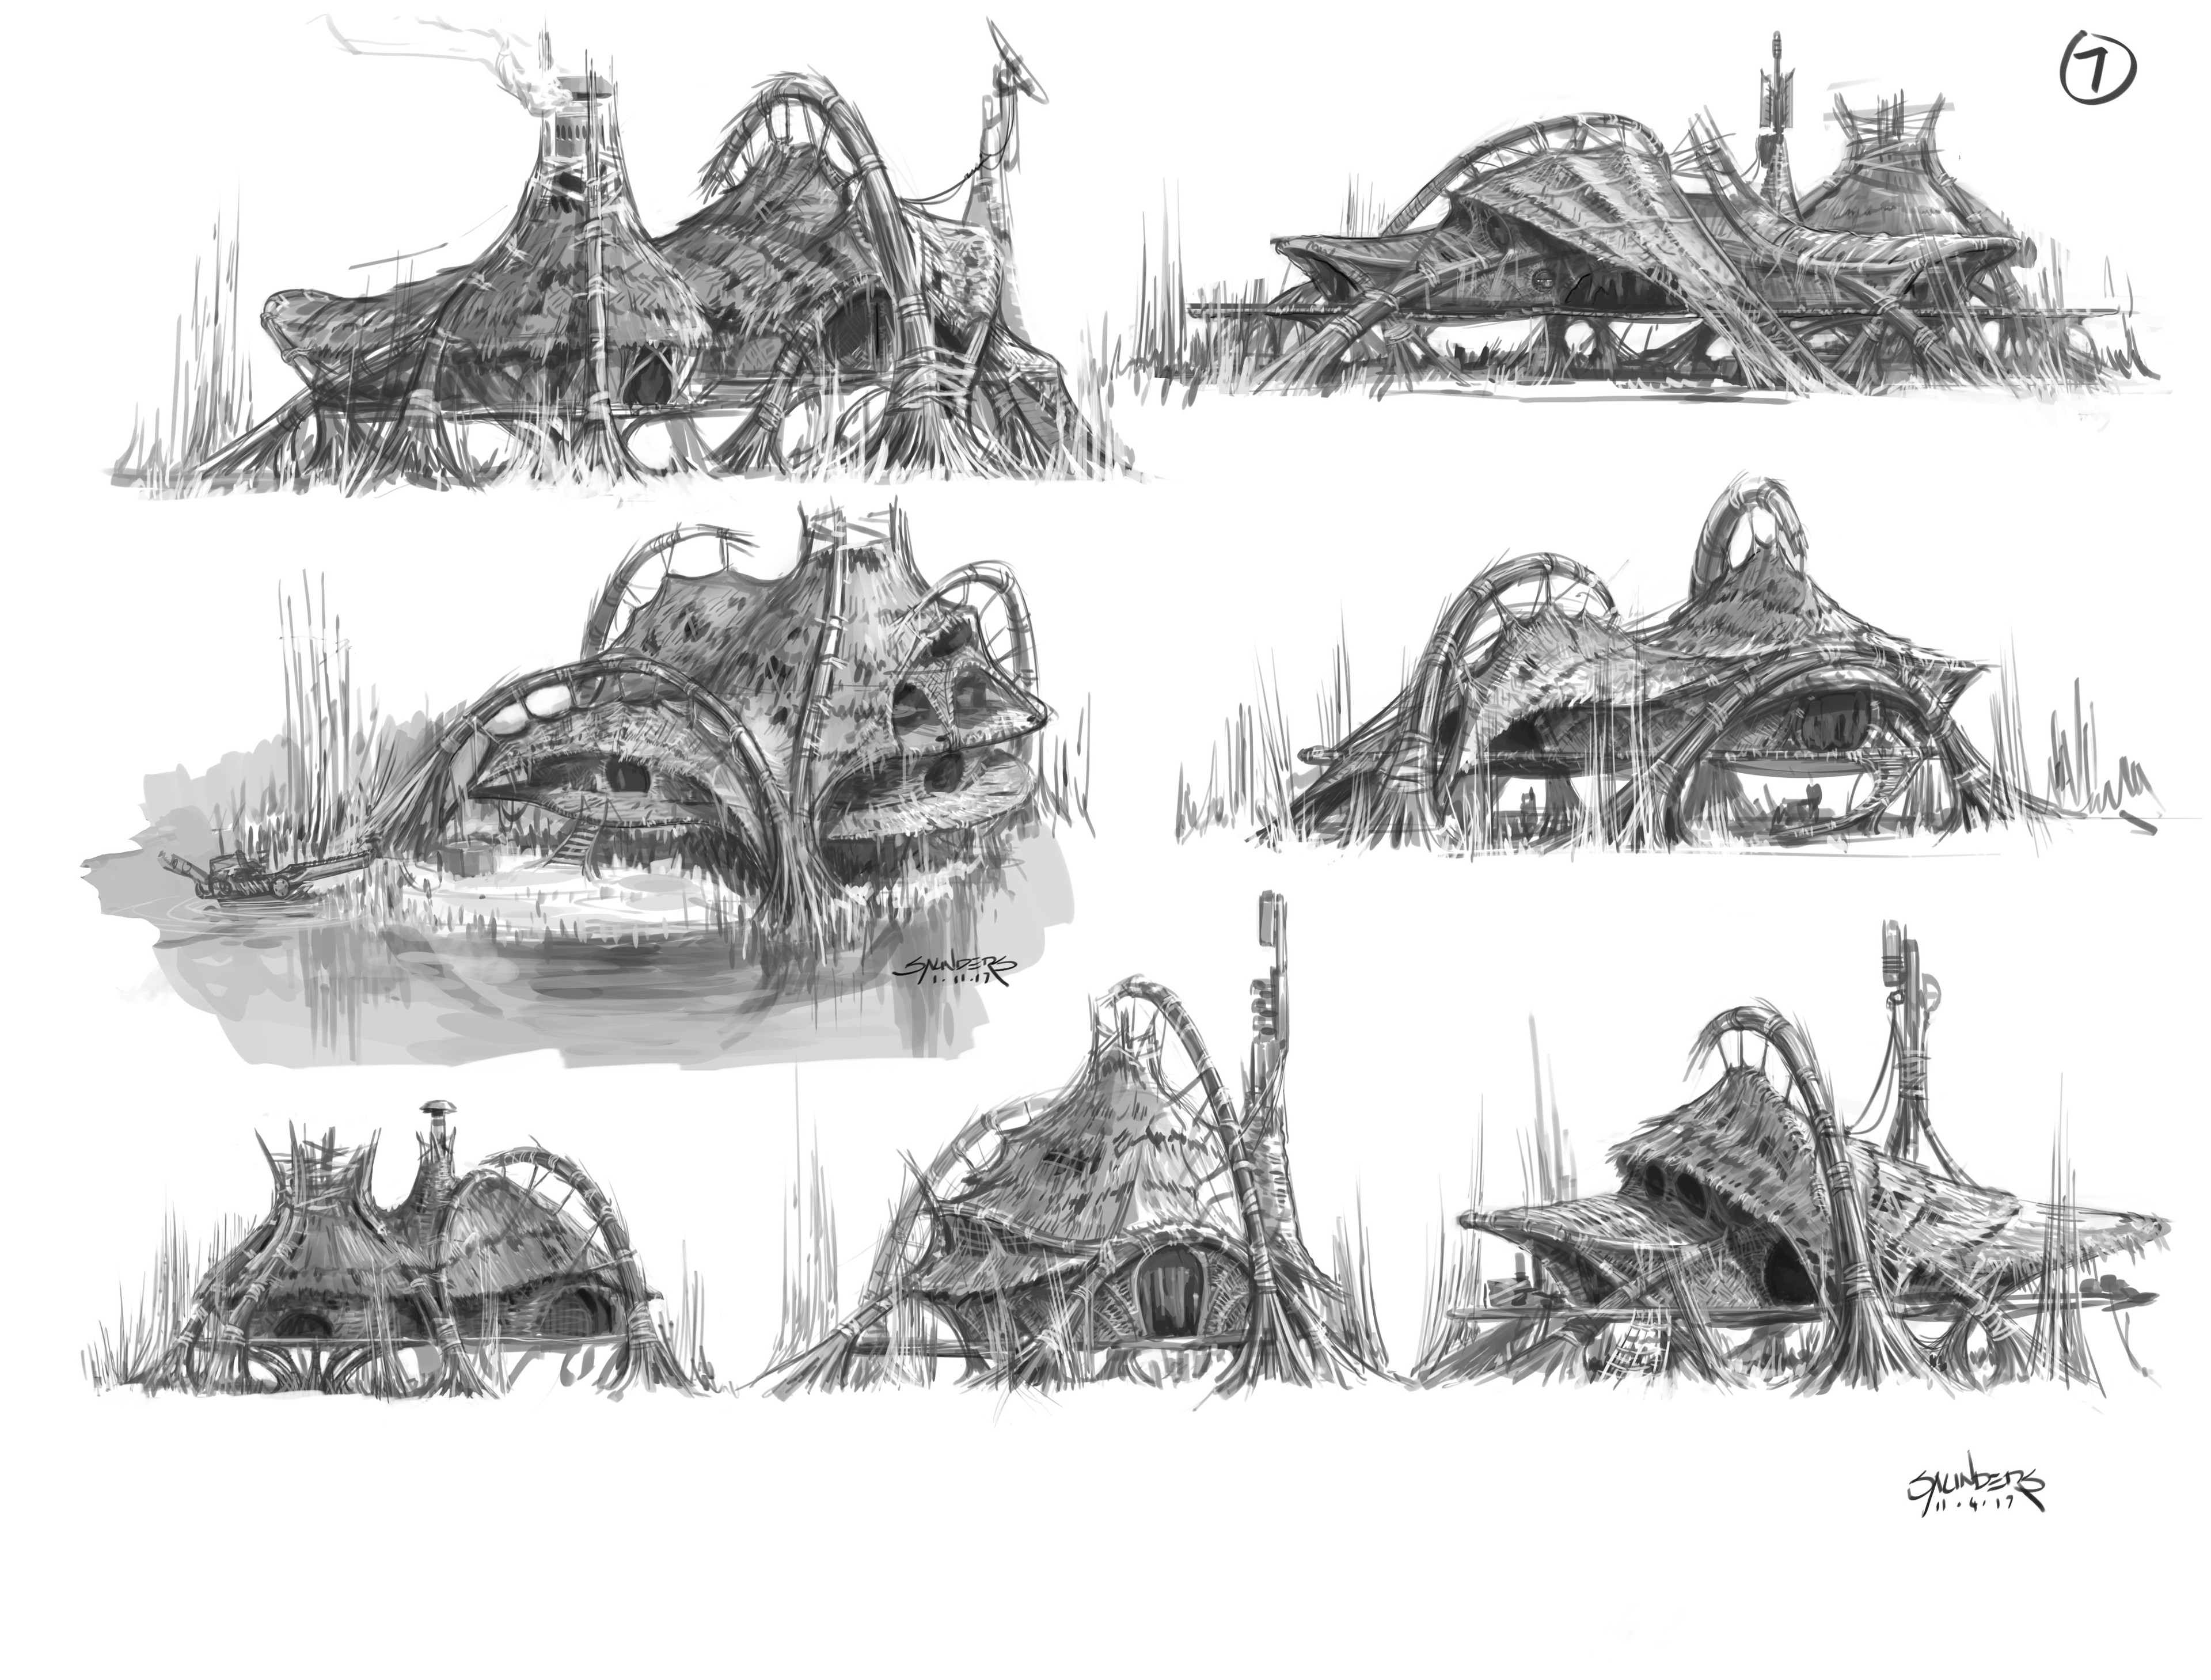 One of many pages of quick sketches for how the reed-based architecture might  work.